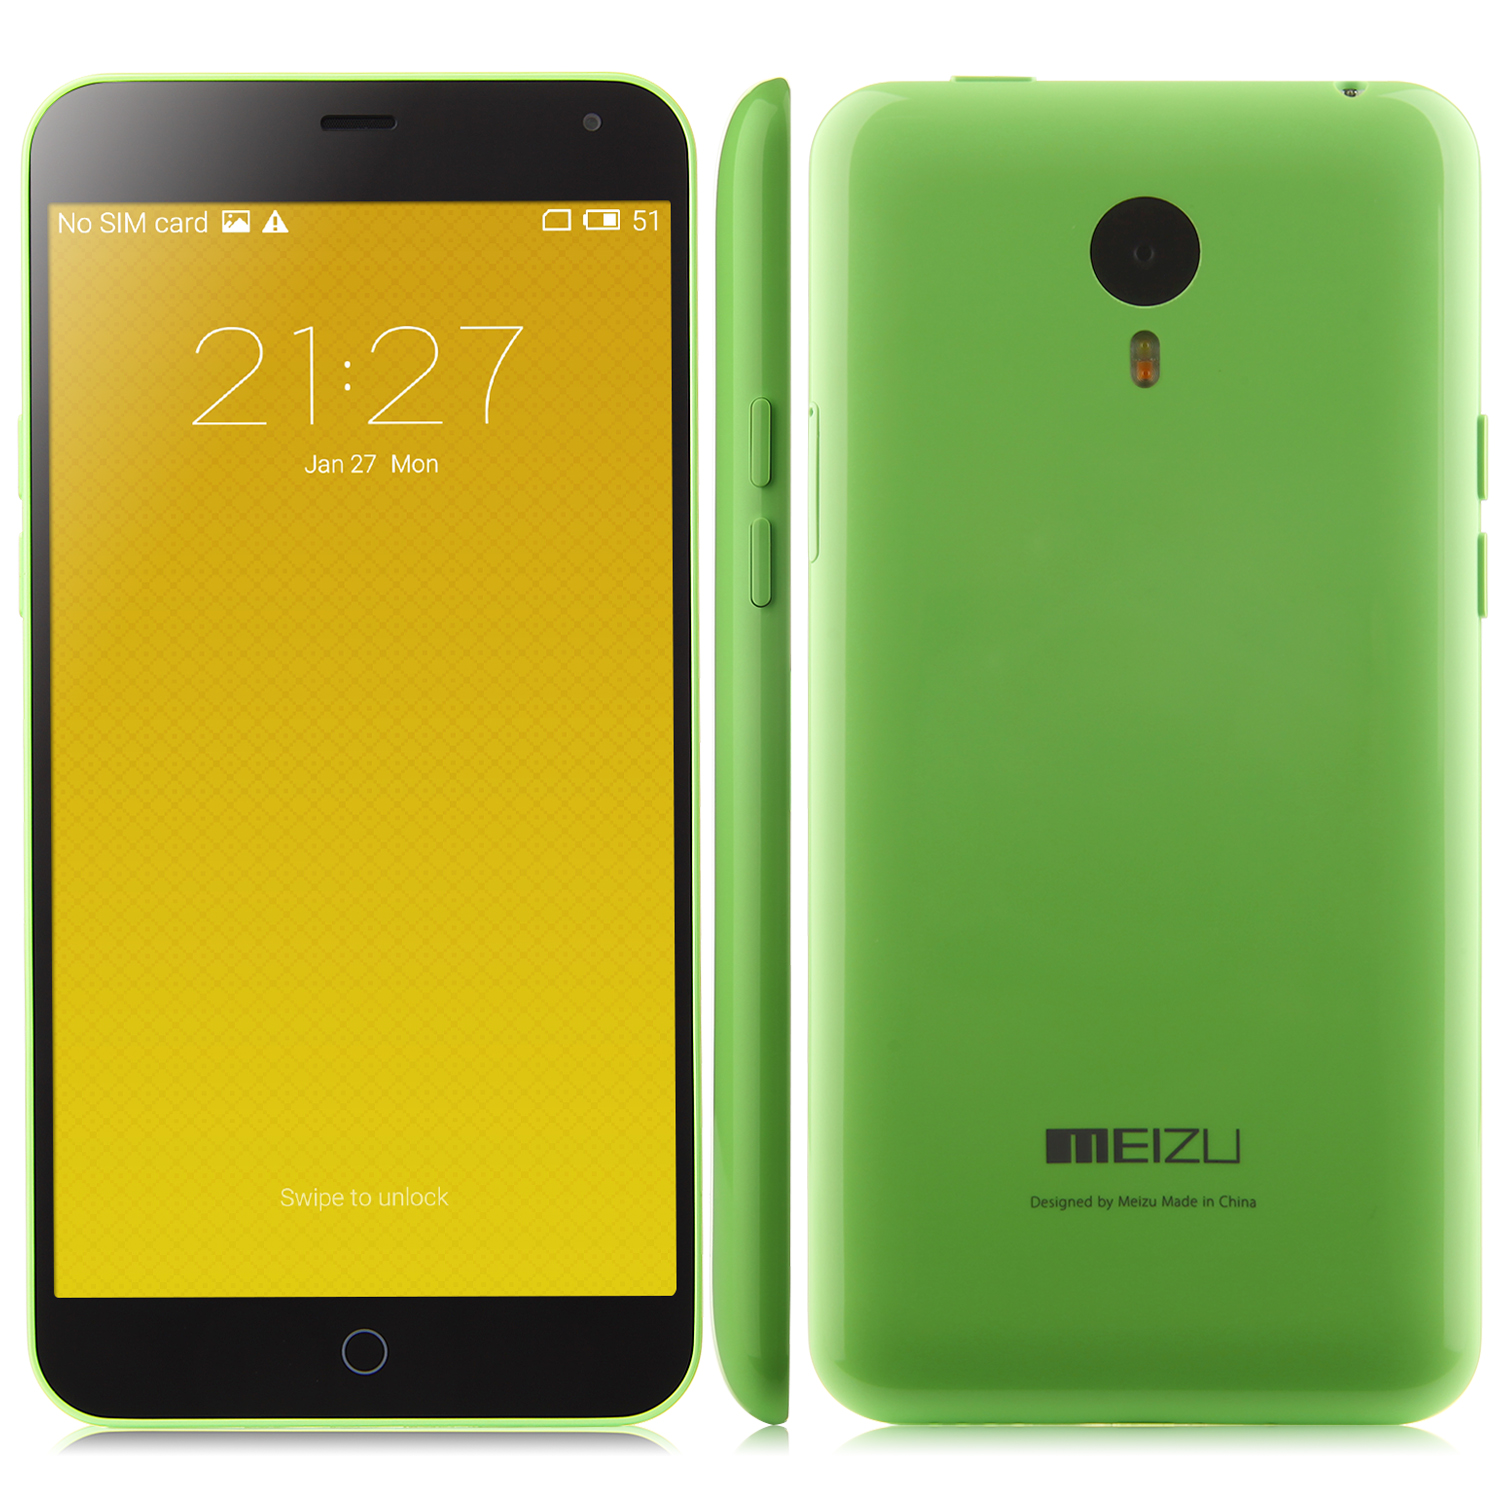 MEIZU m1 note 64bit Octa Core 5.5 Inch Gorilla Glass FHD Screen 2GB 16GB 3140mAh- Green